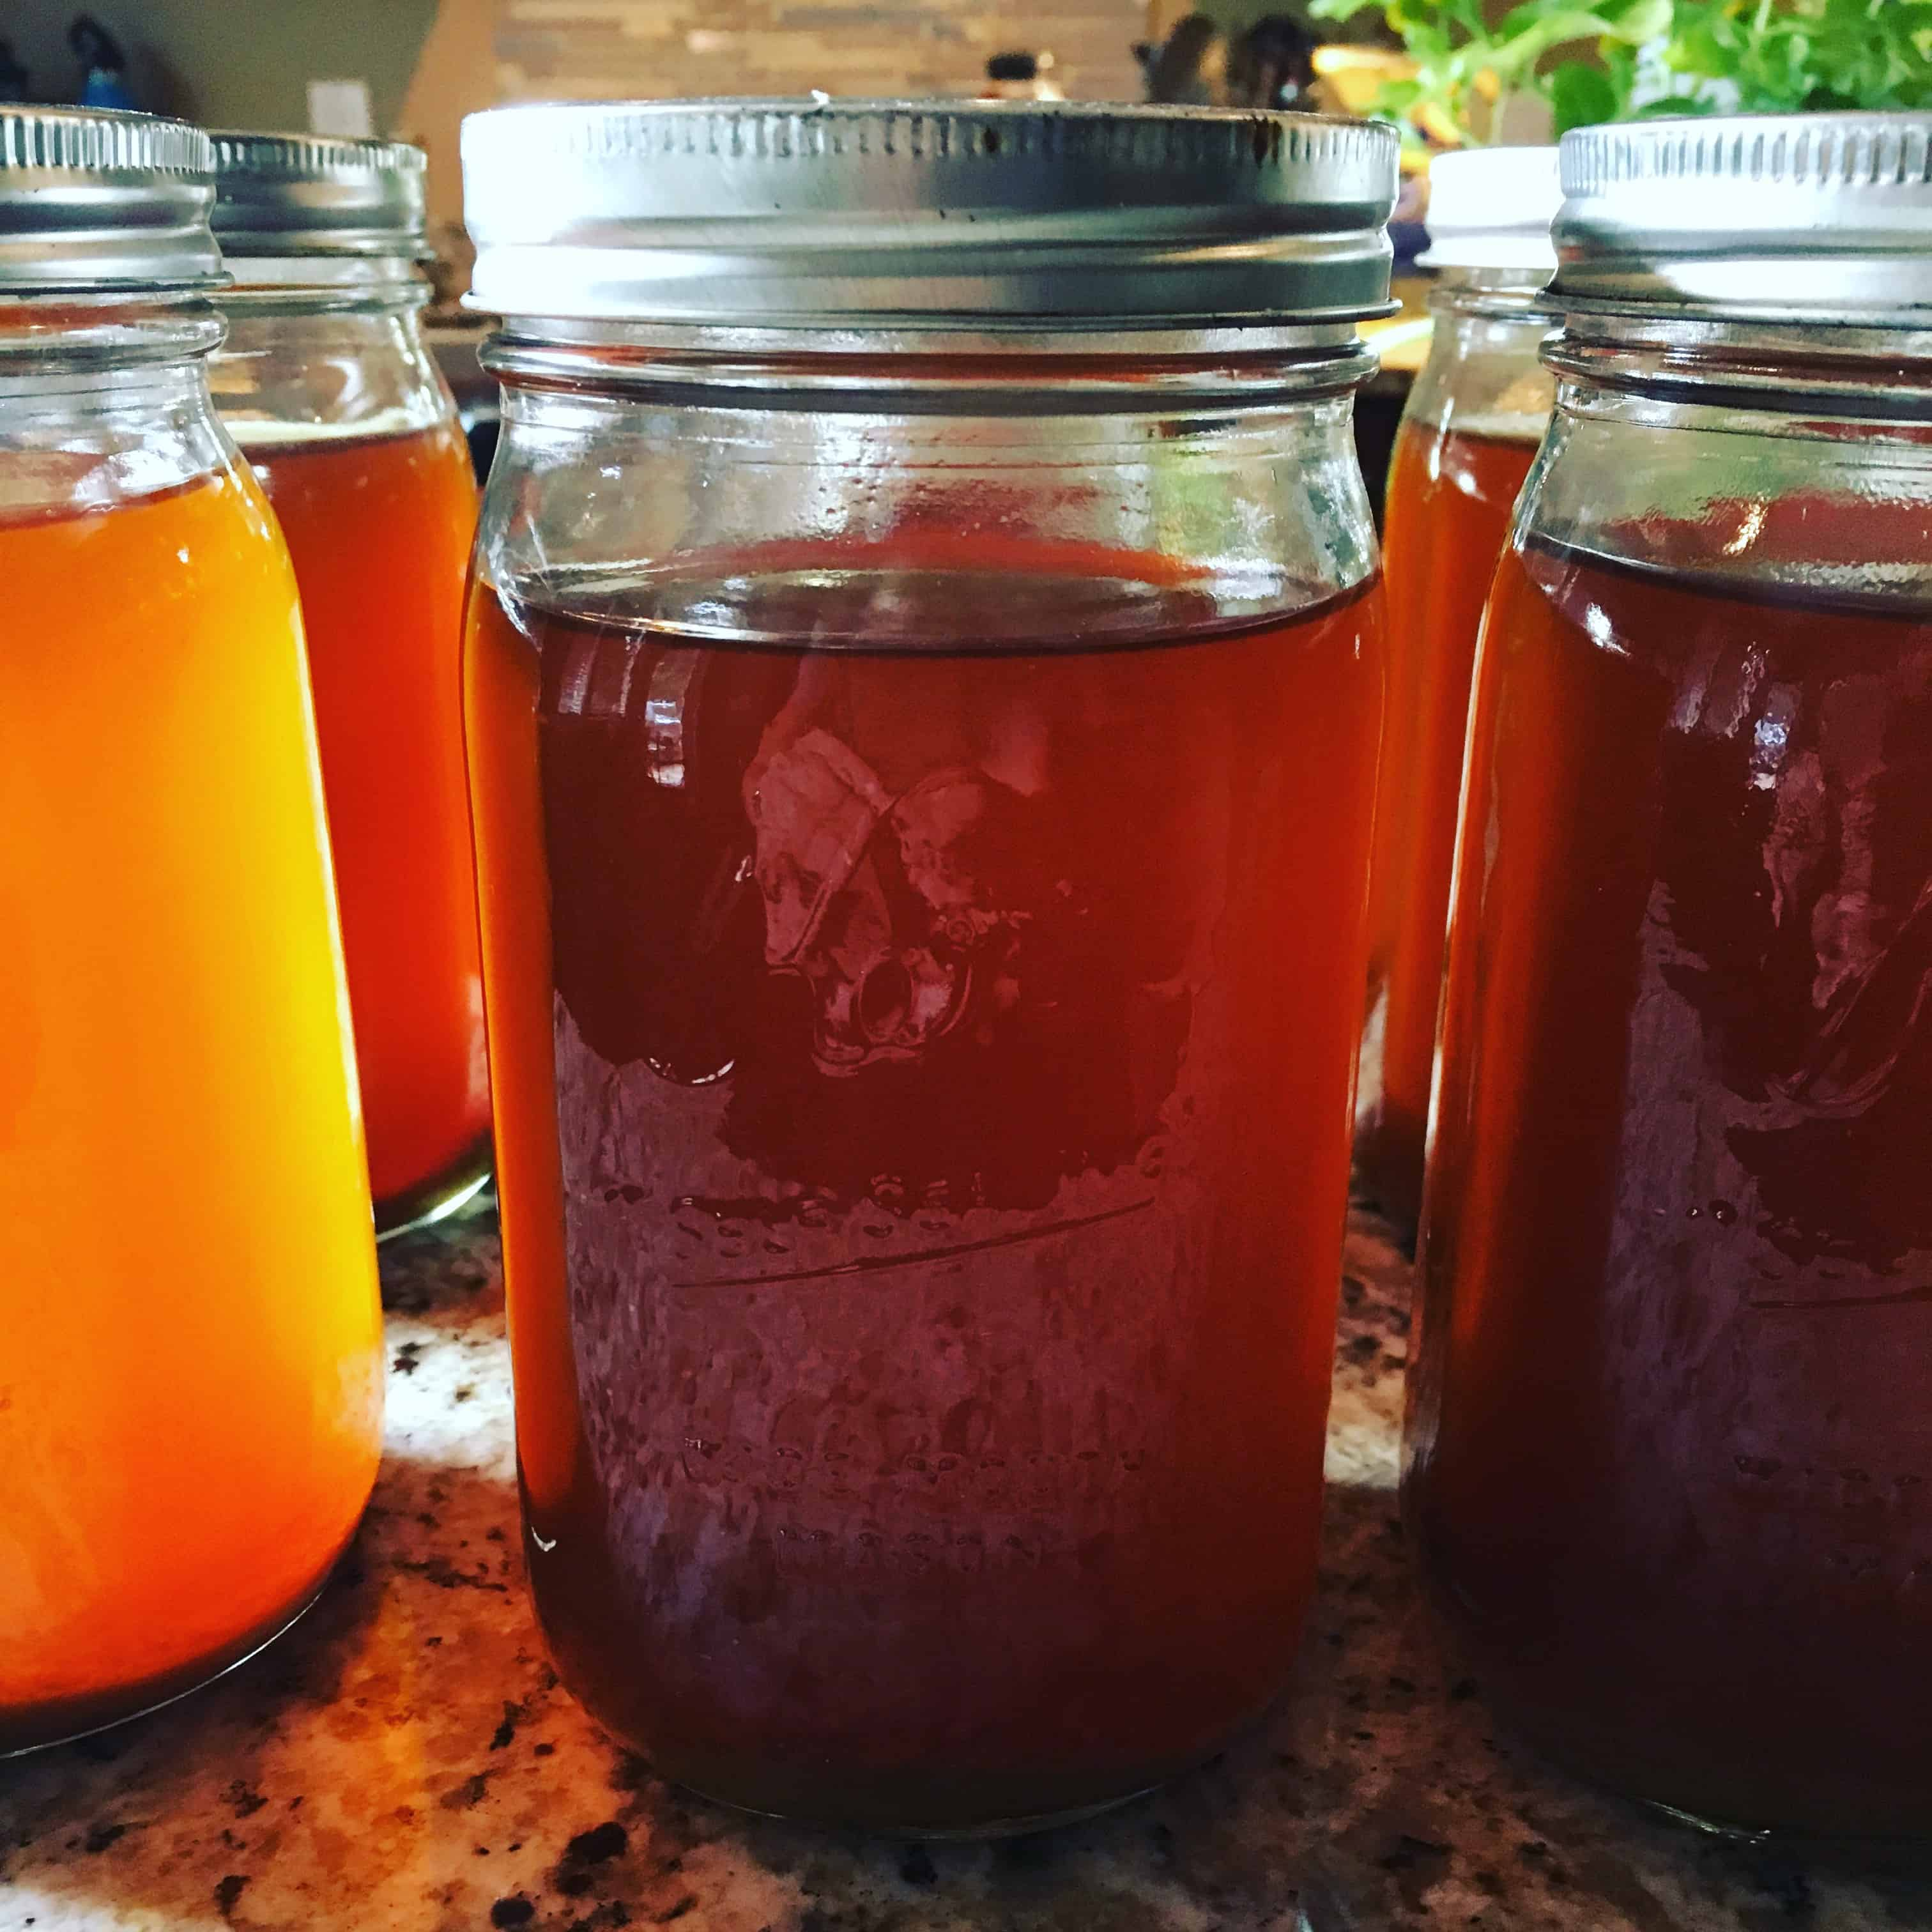 Home canned vegetable stock. https://trimazing.com